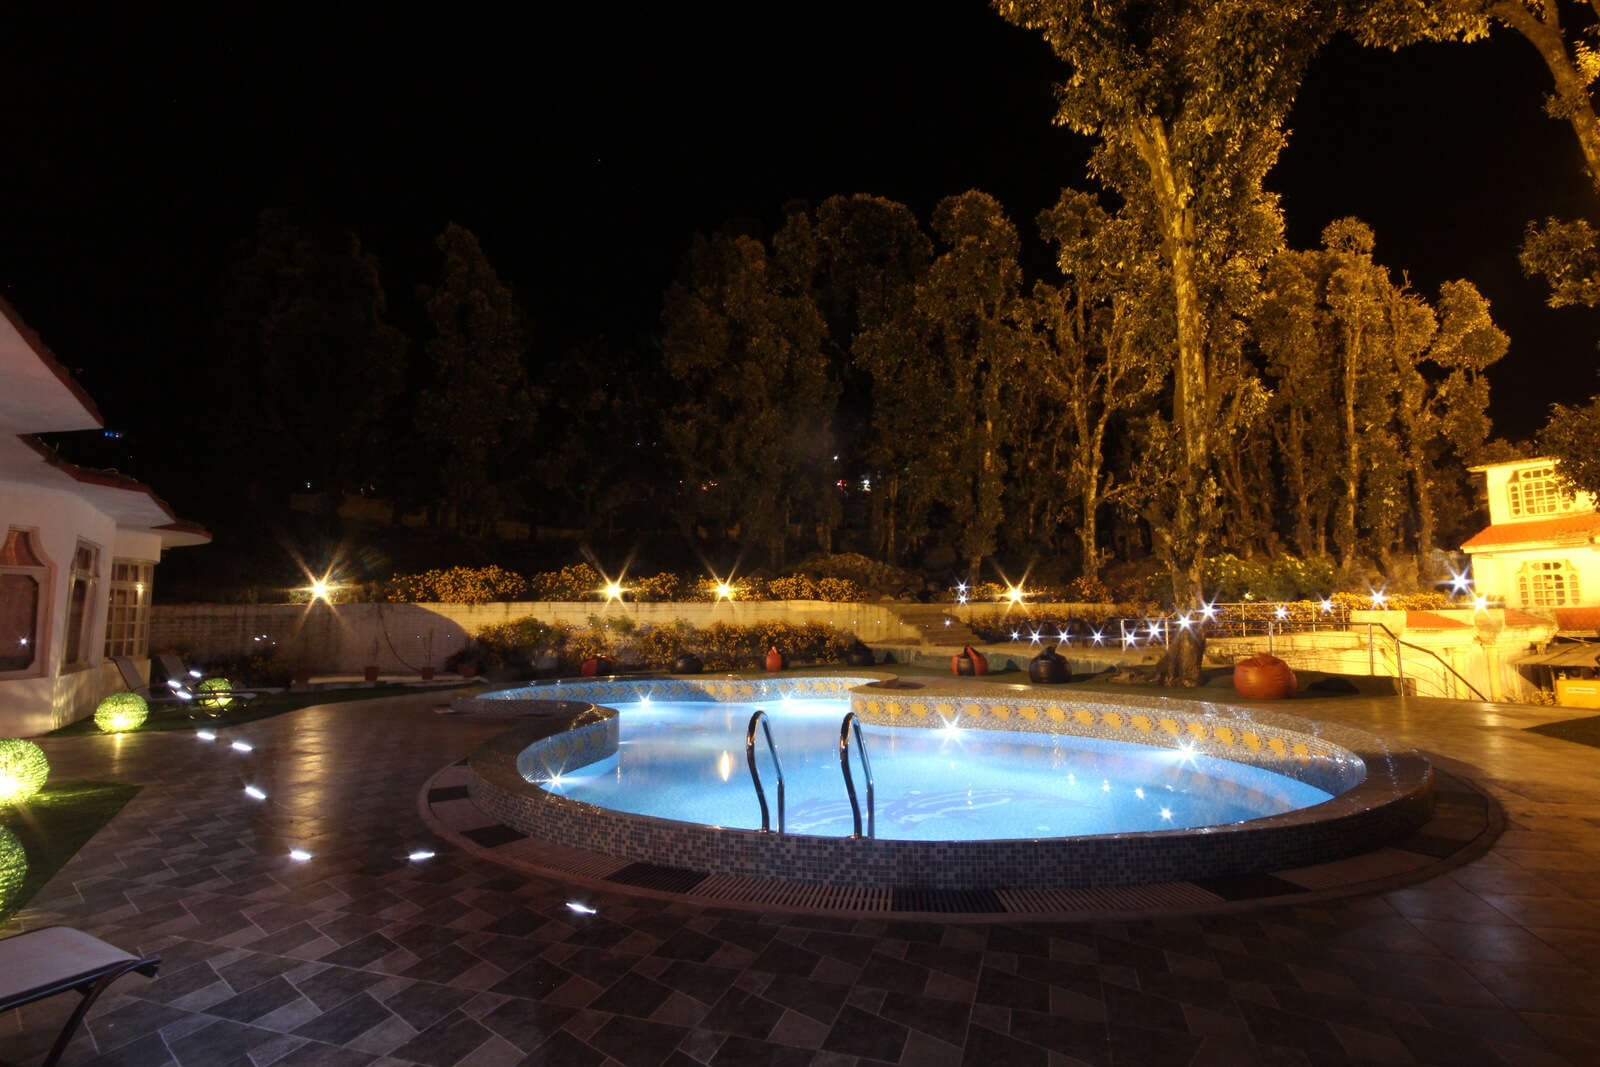 a swimming pool glowing at night